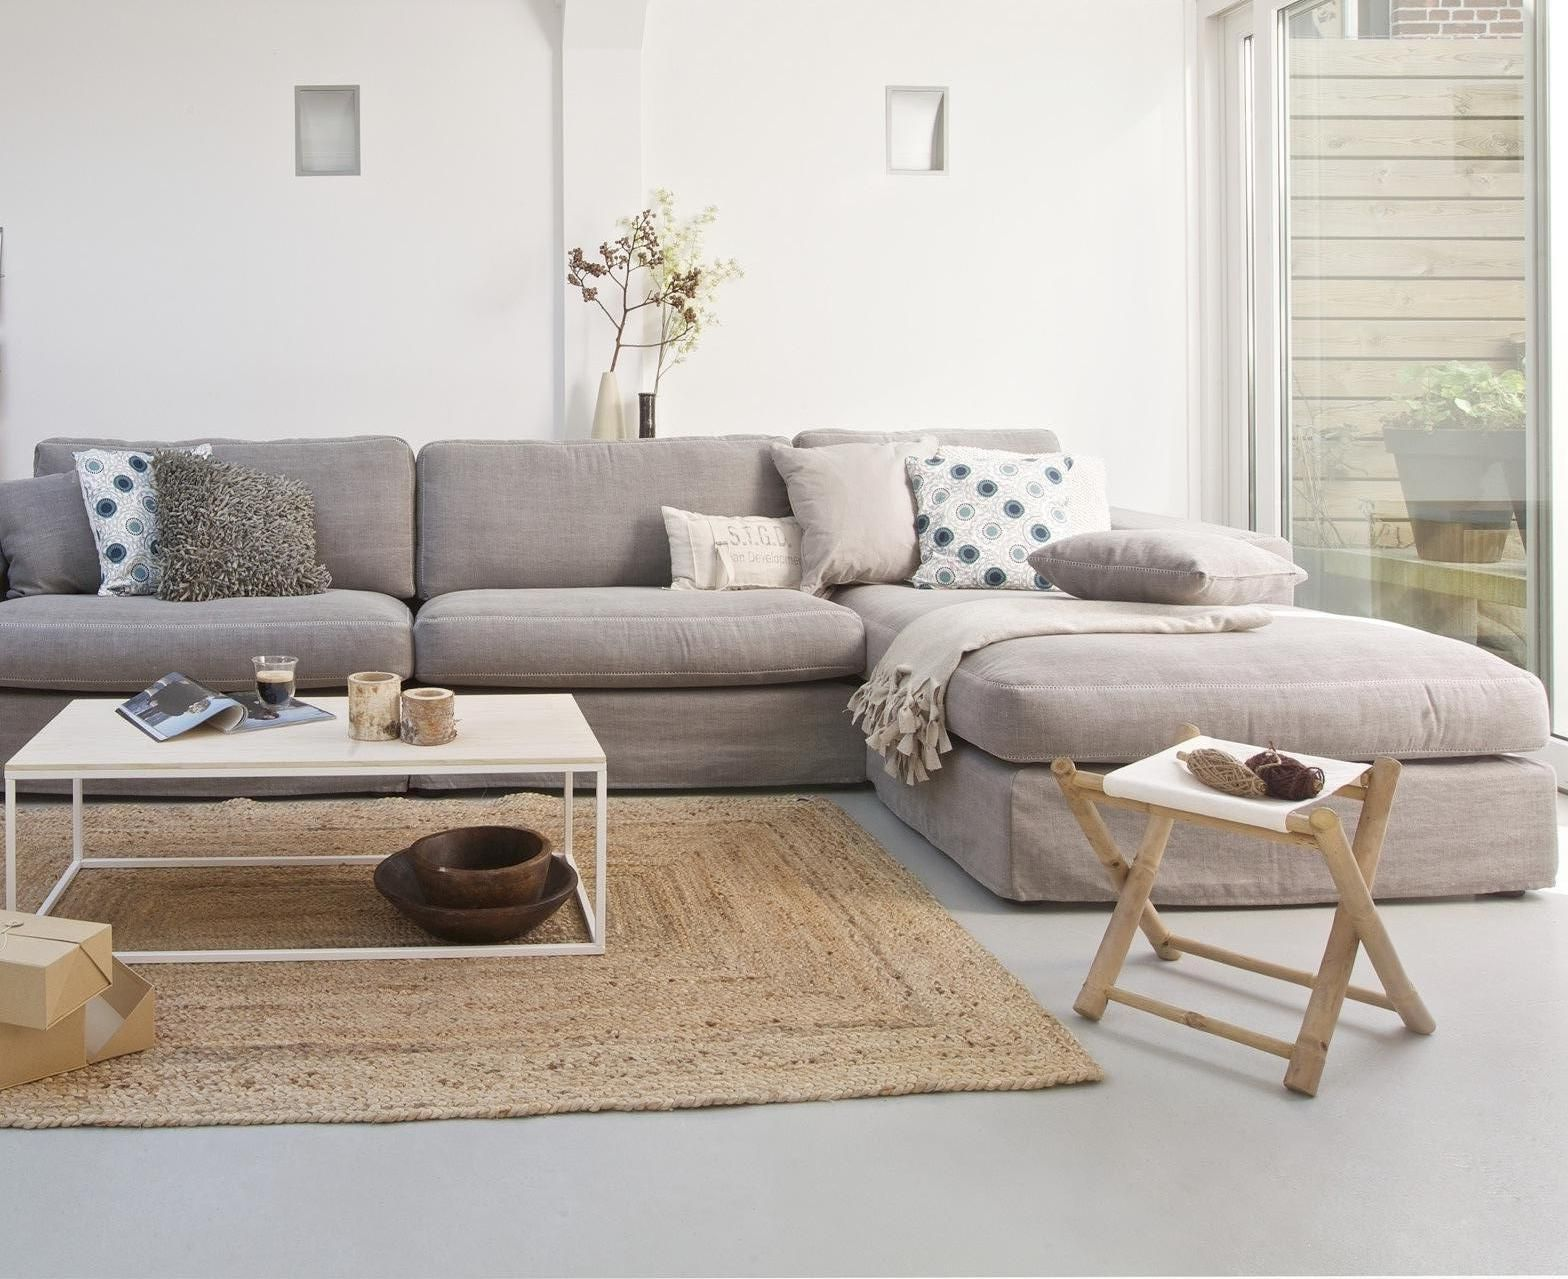 1000 ideas about gray sectional sofas on pinterest grey sectional sofa couch and sectional sofas. Black Bedroom Furniture Sets. Home Design Ideas